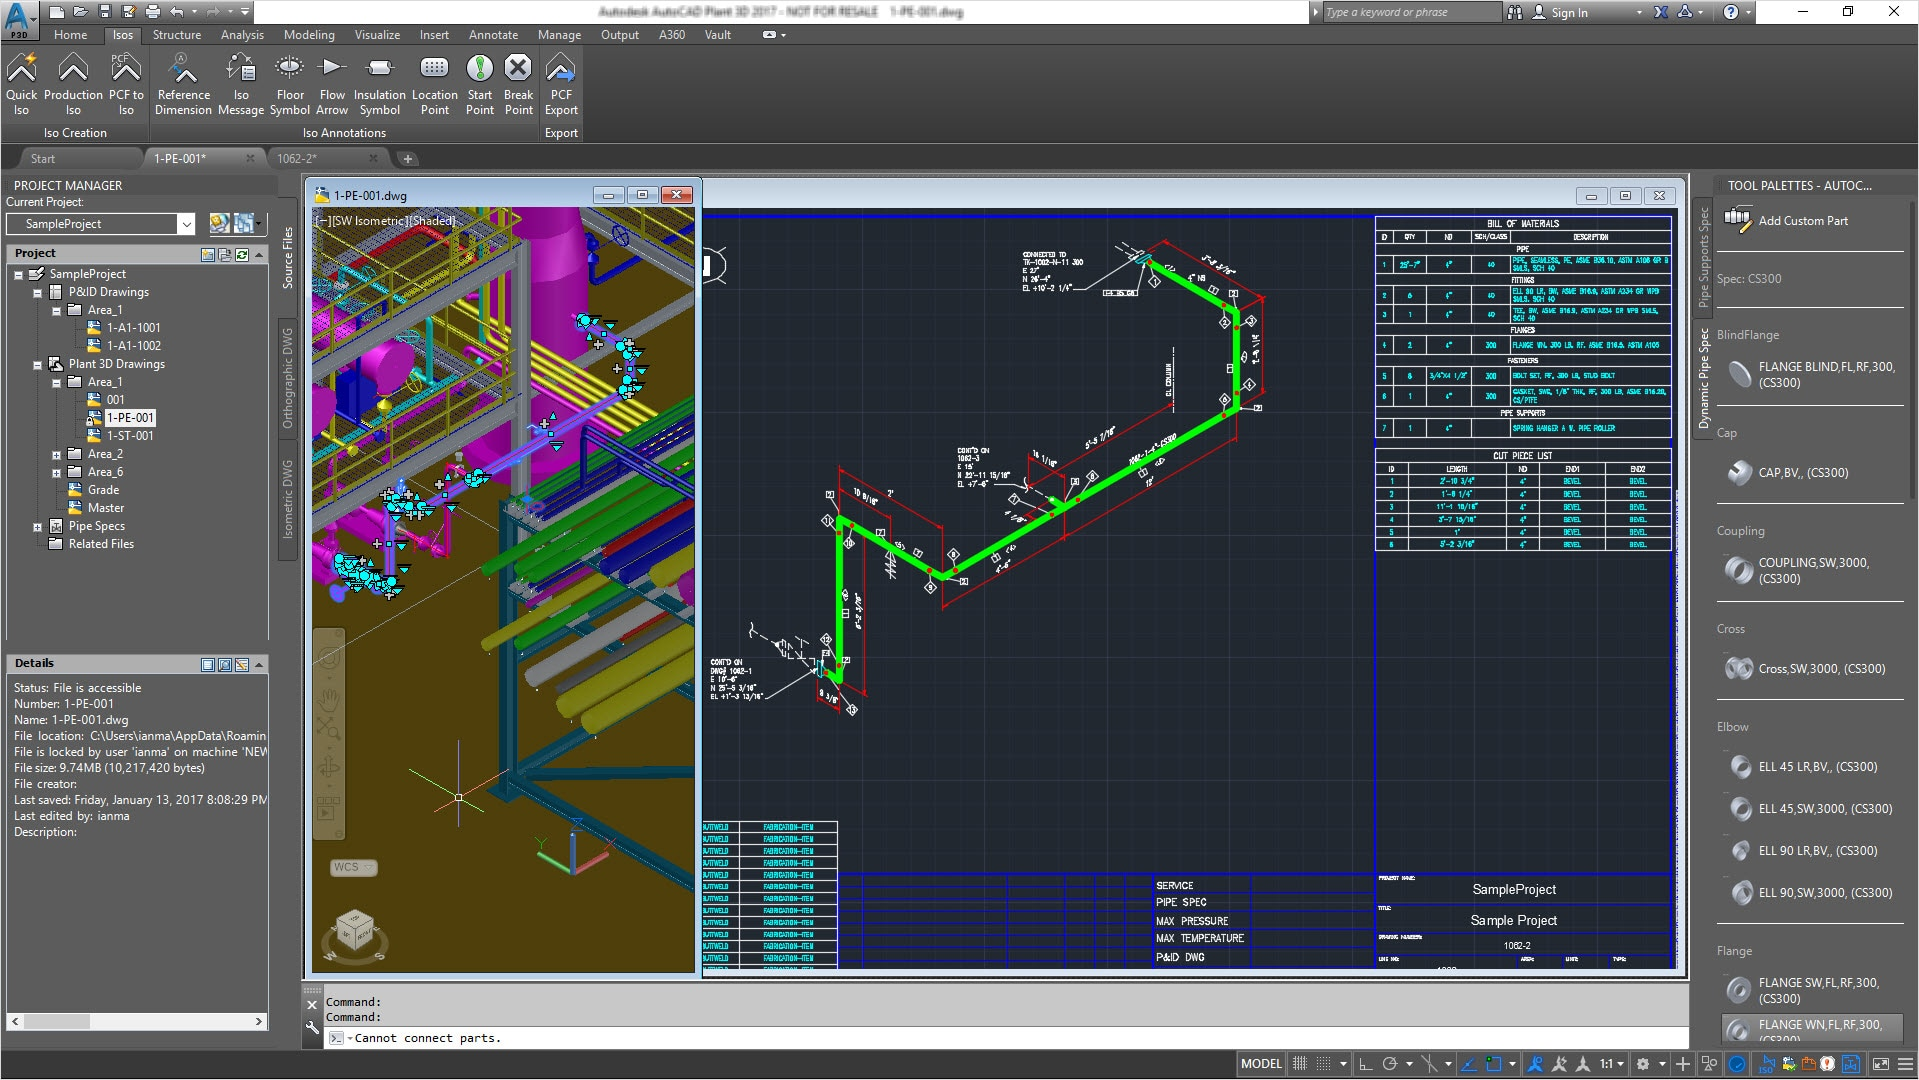 Autocad plant 3d 3d plant design center autodesk 3d layout design software free